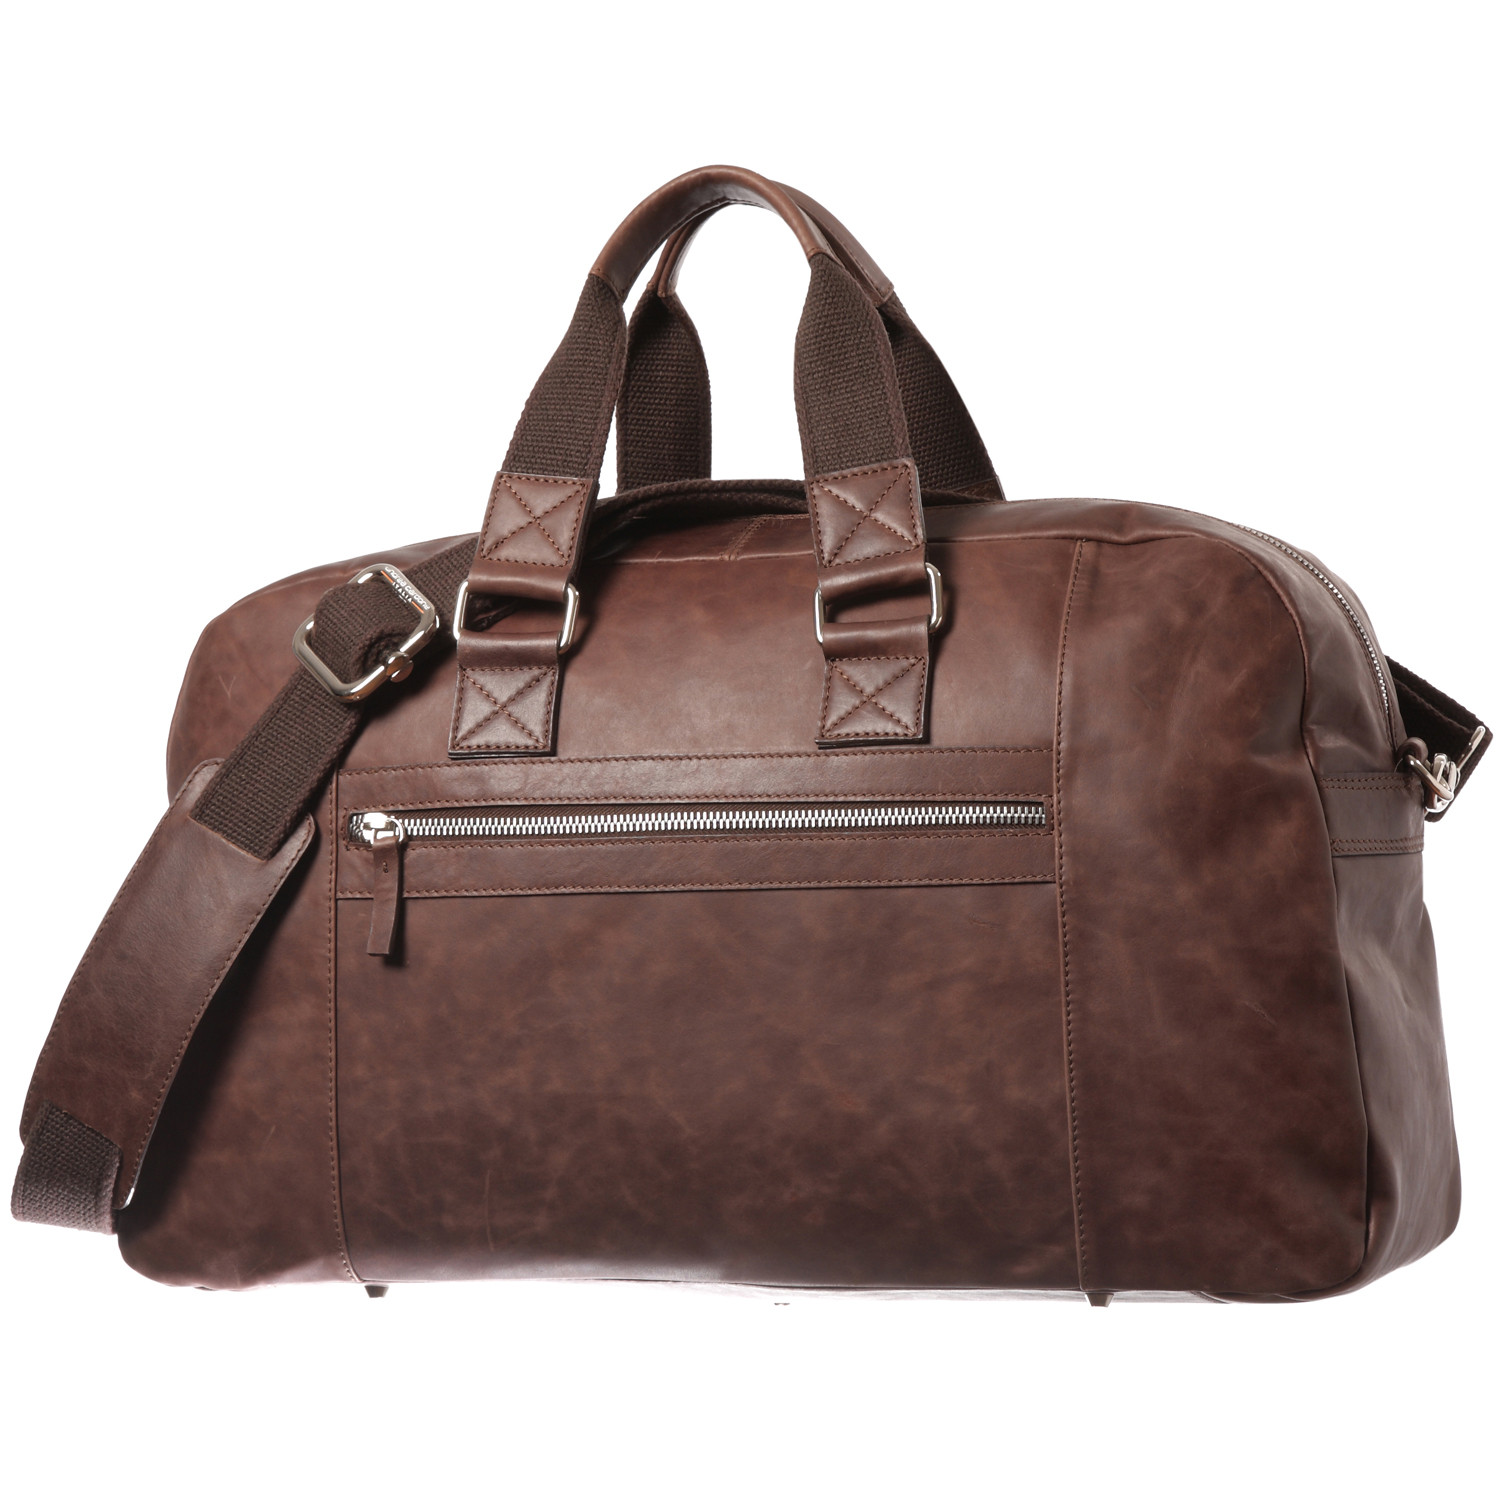 Vintage Leather Overnight Bag - Andrea Cardone Italia - Touch of ...